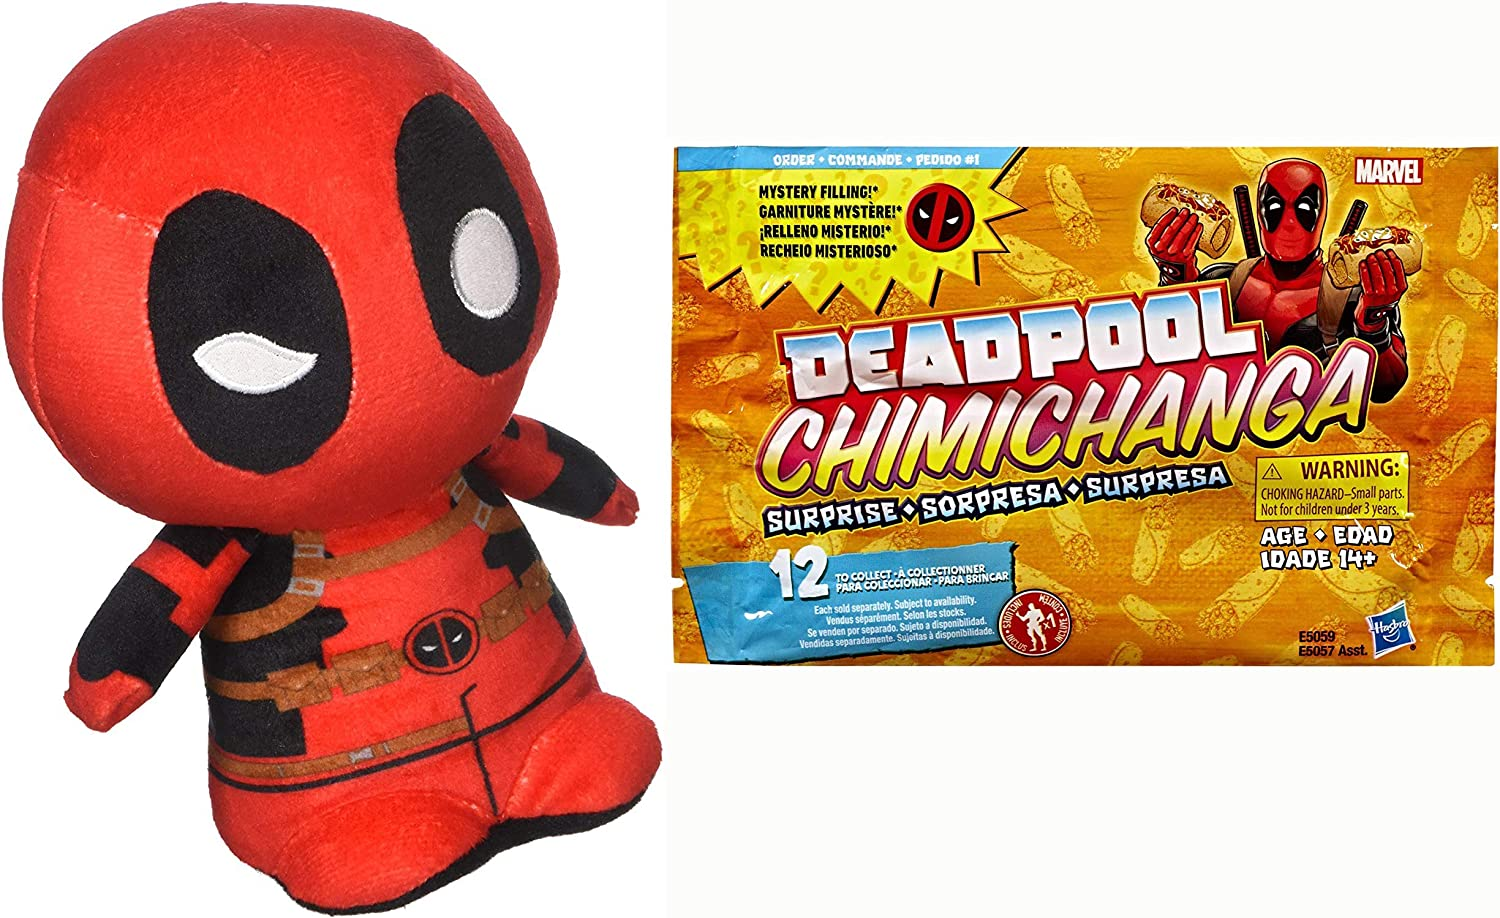 Funko Merck with A Mouth Hungry Man Pack Super Cute Plushies: Deadpool +: Amazon.es: Juguetes y juegos